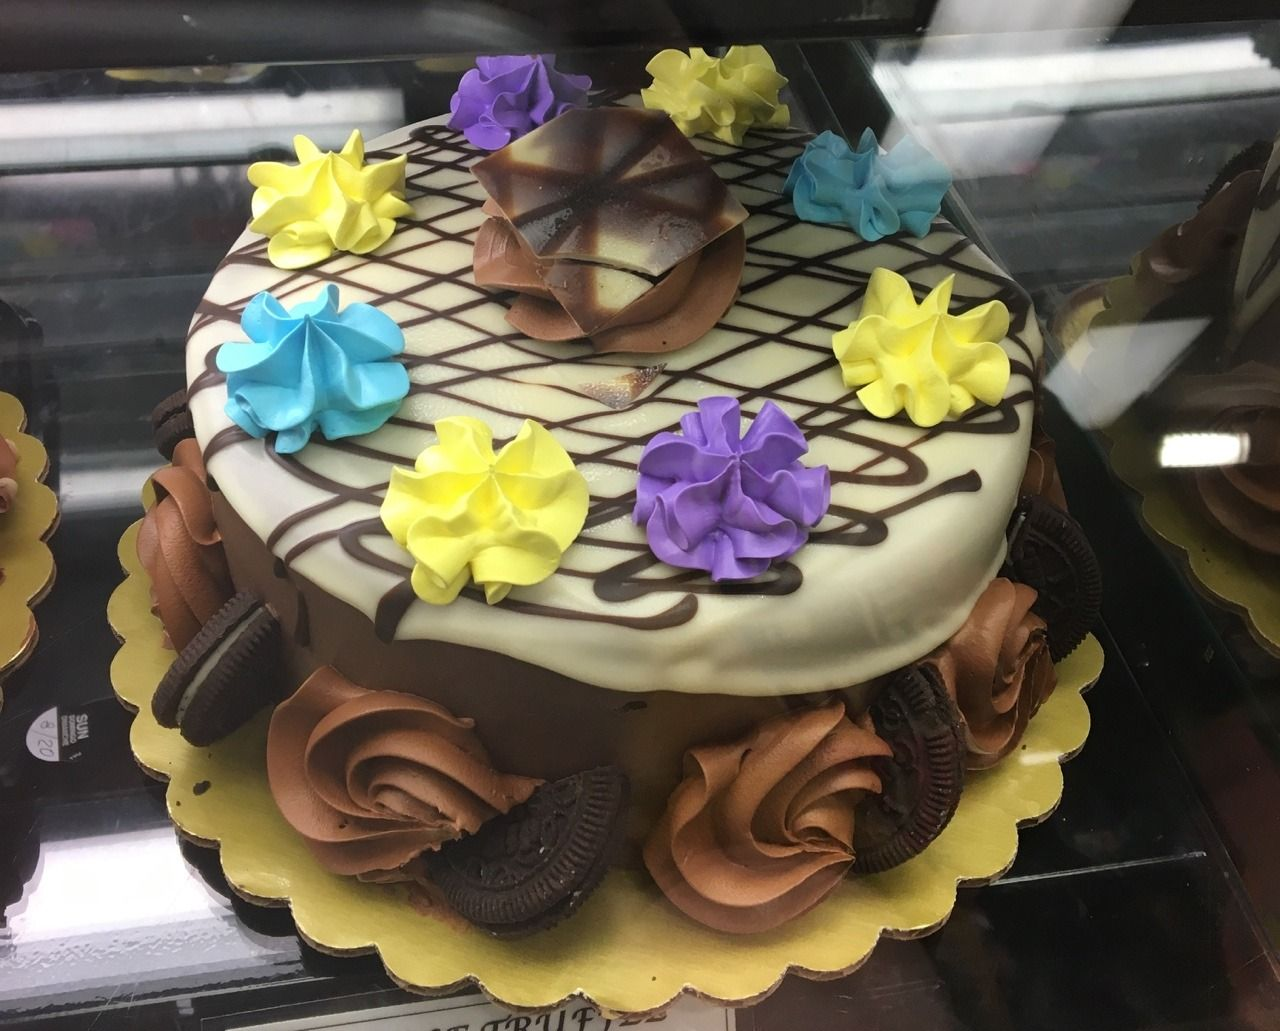 Fabulous Pictures Of Cakes From Grocery Stores Cake Desserts Grocery Store Personalised Birthday Cards Paralily Jamesorg